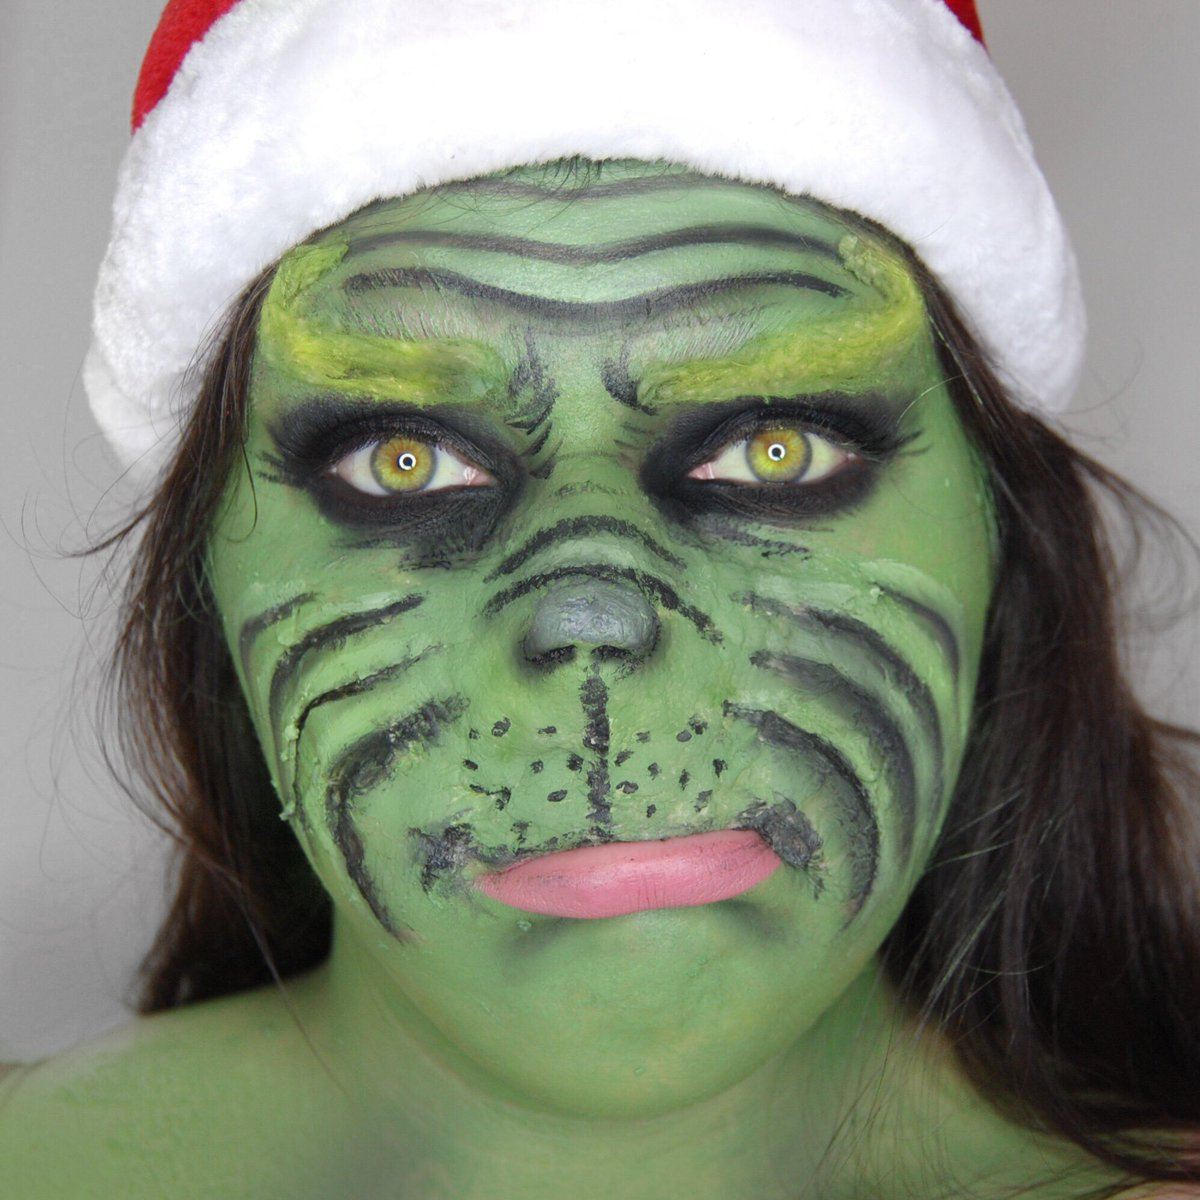 You're a mean one... Mr. Grinch!   HOLY CRAP MERRY CHRISTMAS PEOPLE AND HAPPY #DAY25 OF #25DAYSOFMAKEUP !!    Can't believe I actually did 25 days in a row tbh  Hope you all have a great Christmas!  <br>http://pic.twitter.com/JTXpKMJ2PY